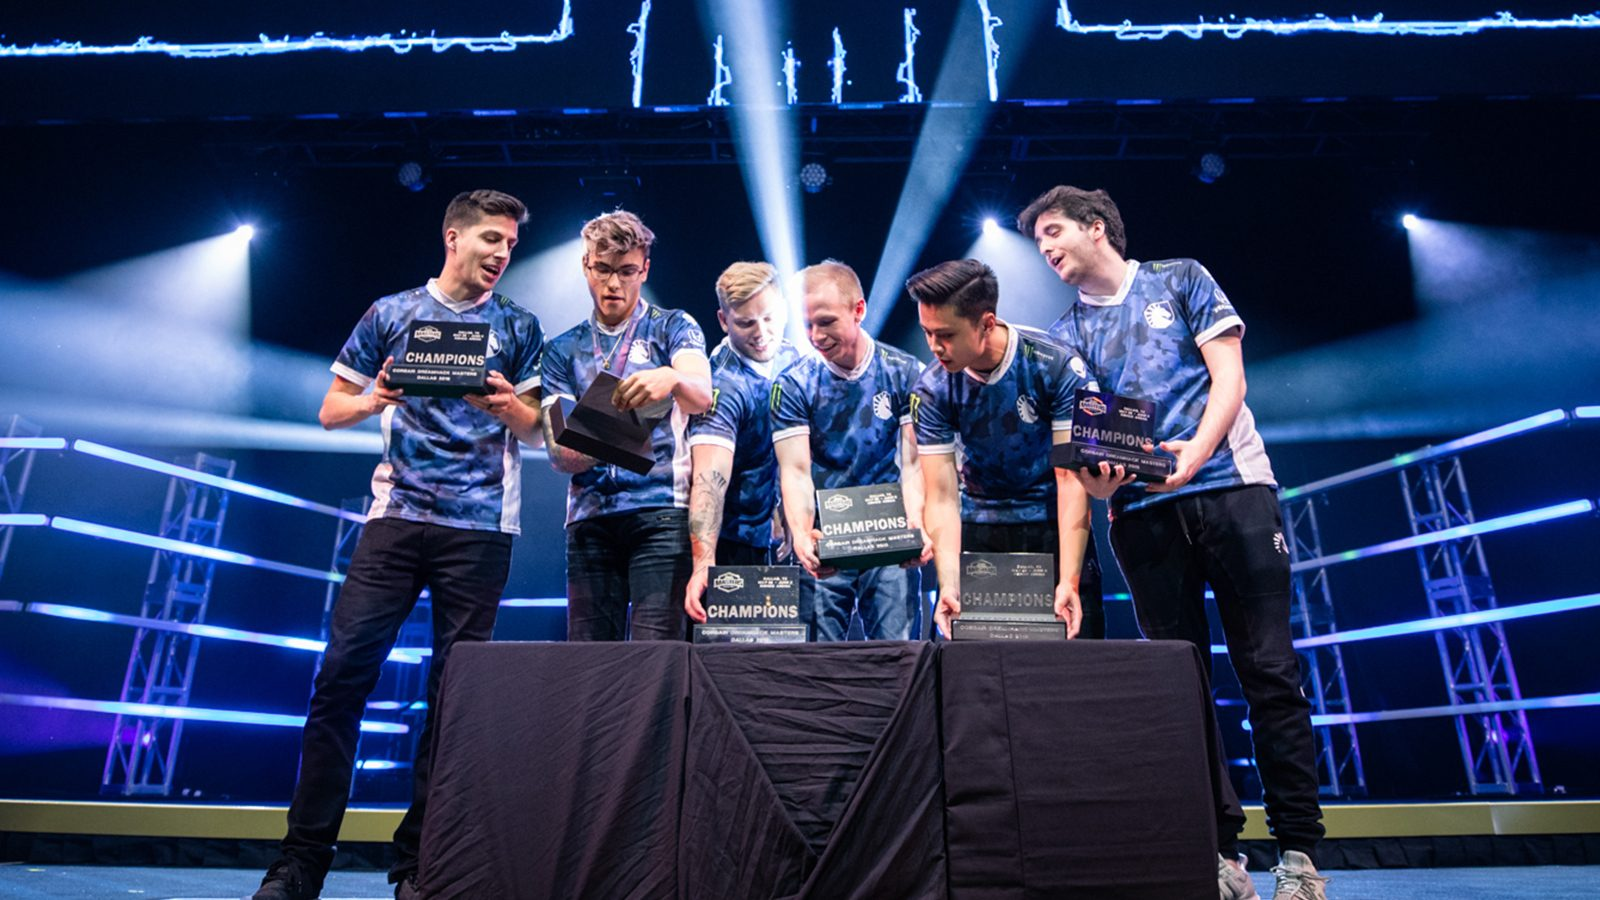 Team Liquid is the most watched esports team of 2019 with G2 following